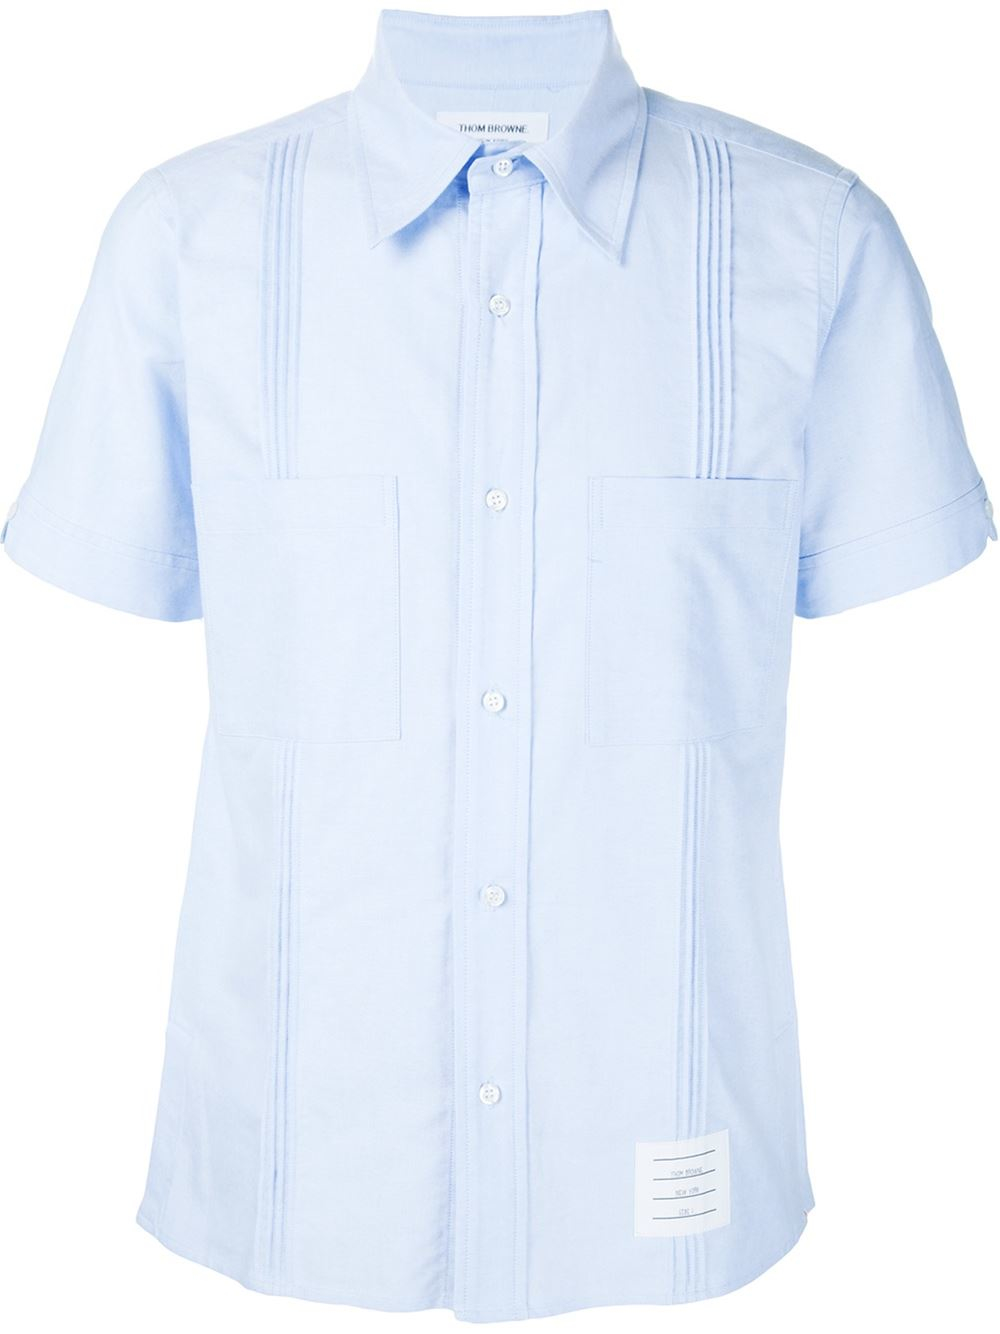 Thom browne shortsleeved shirt in white for men blue for Thom browne shirt sale